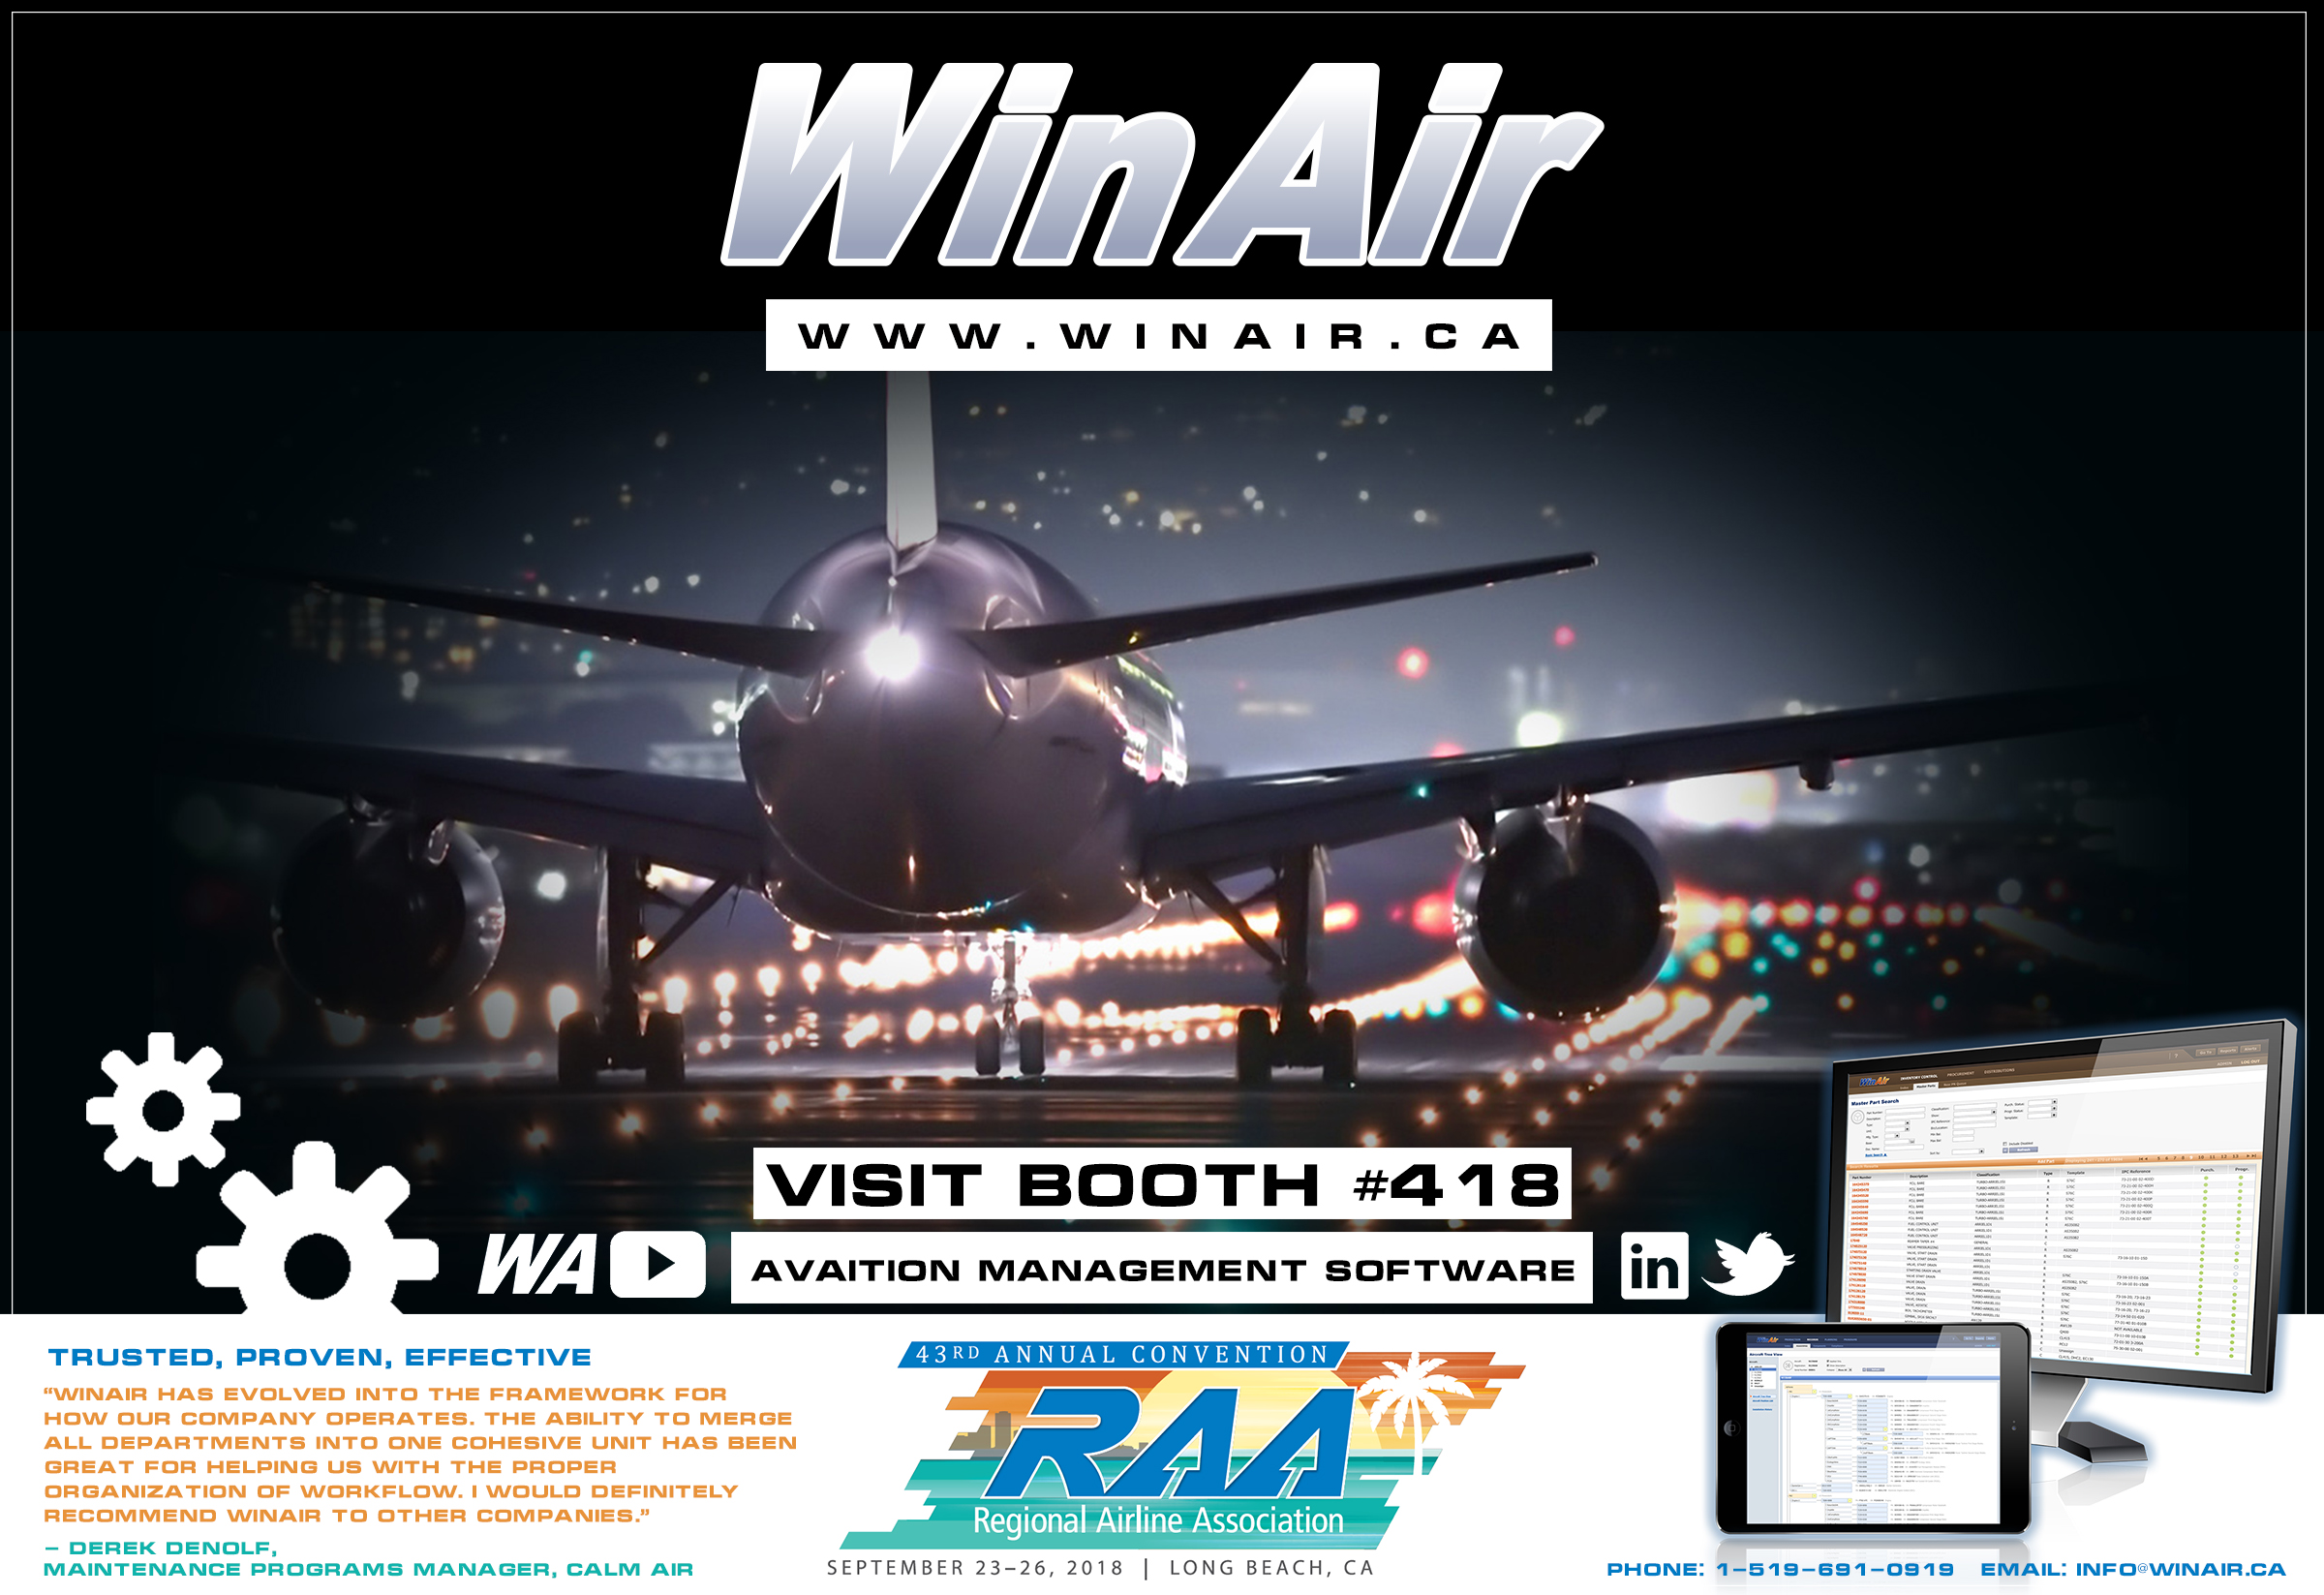 WinAir - Aviation Management Software - RAA Promotional Image - Booth 418